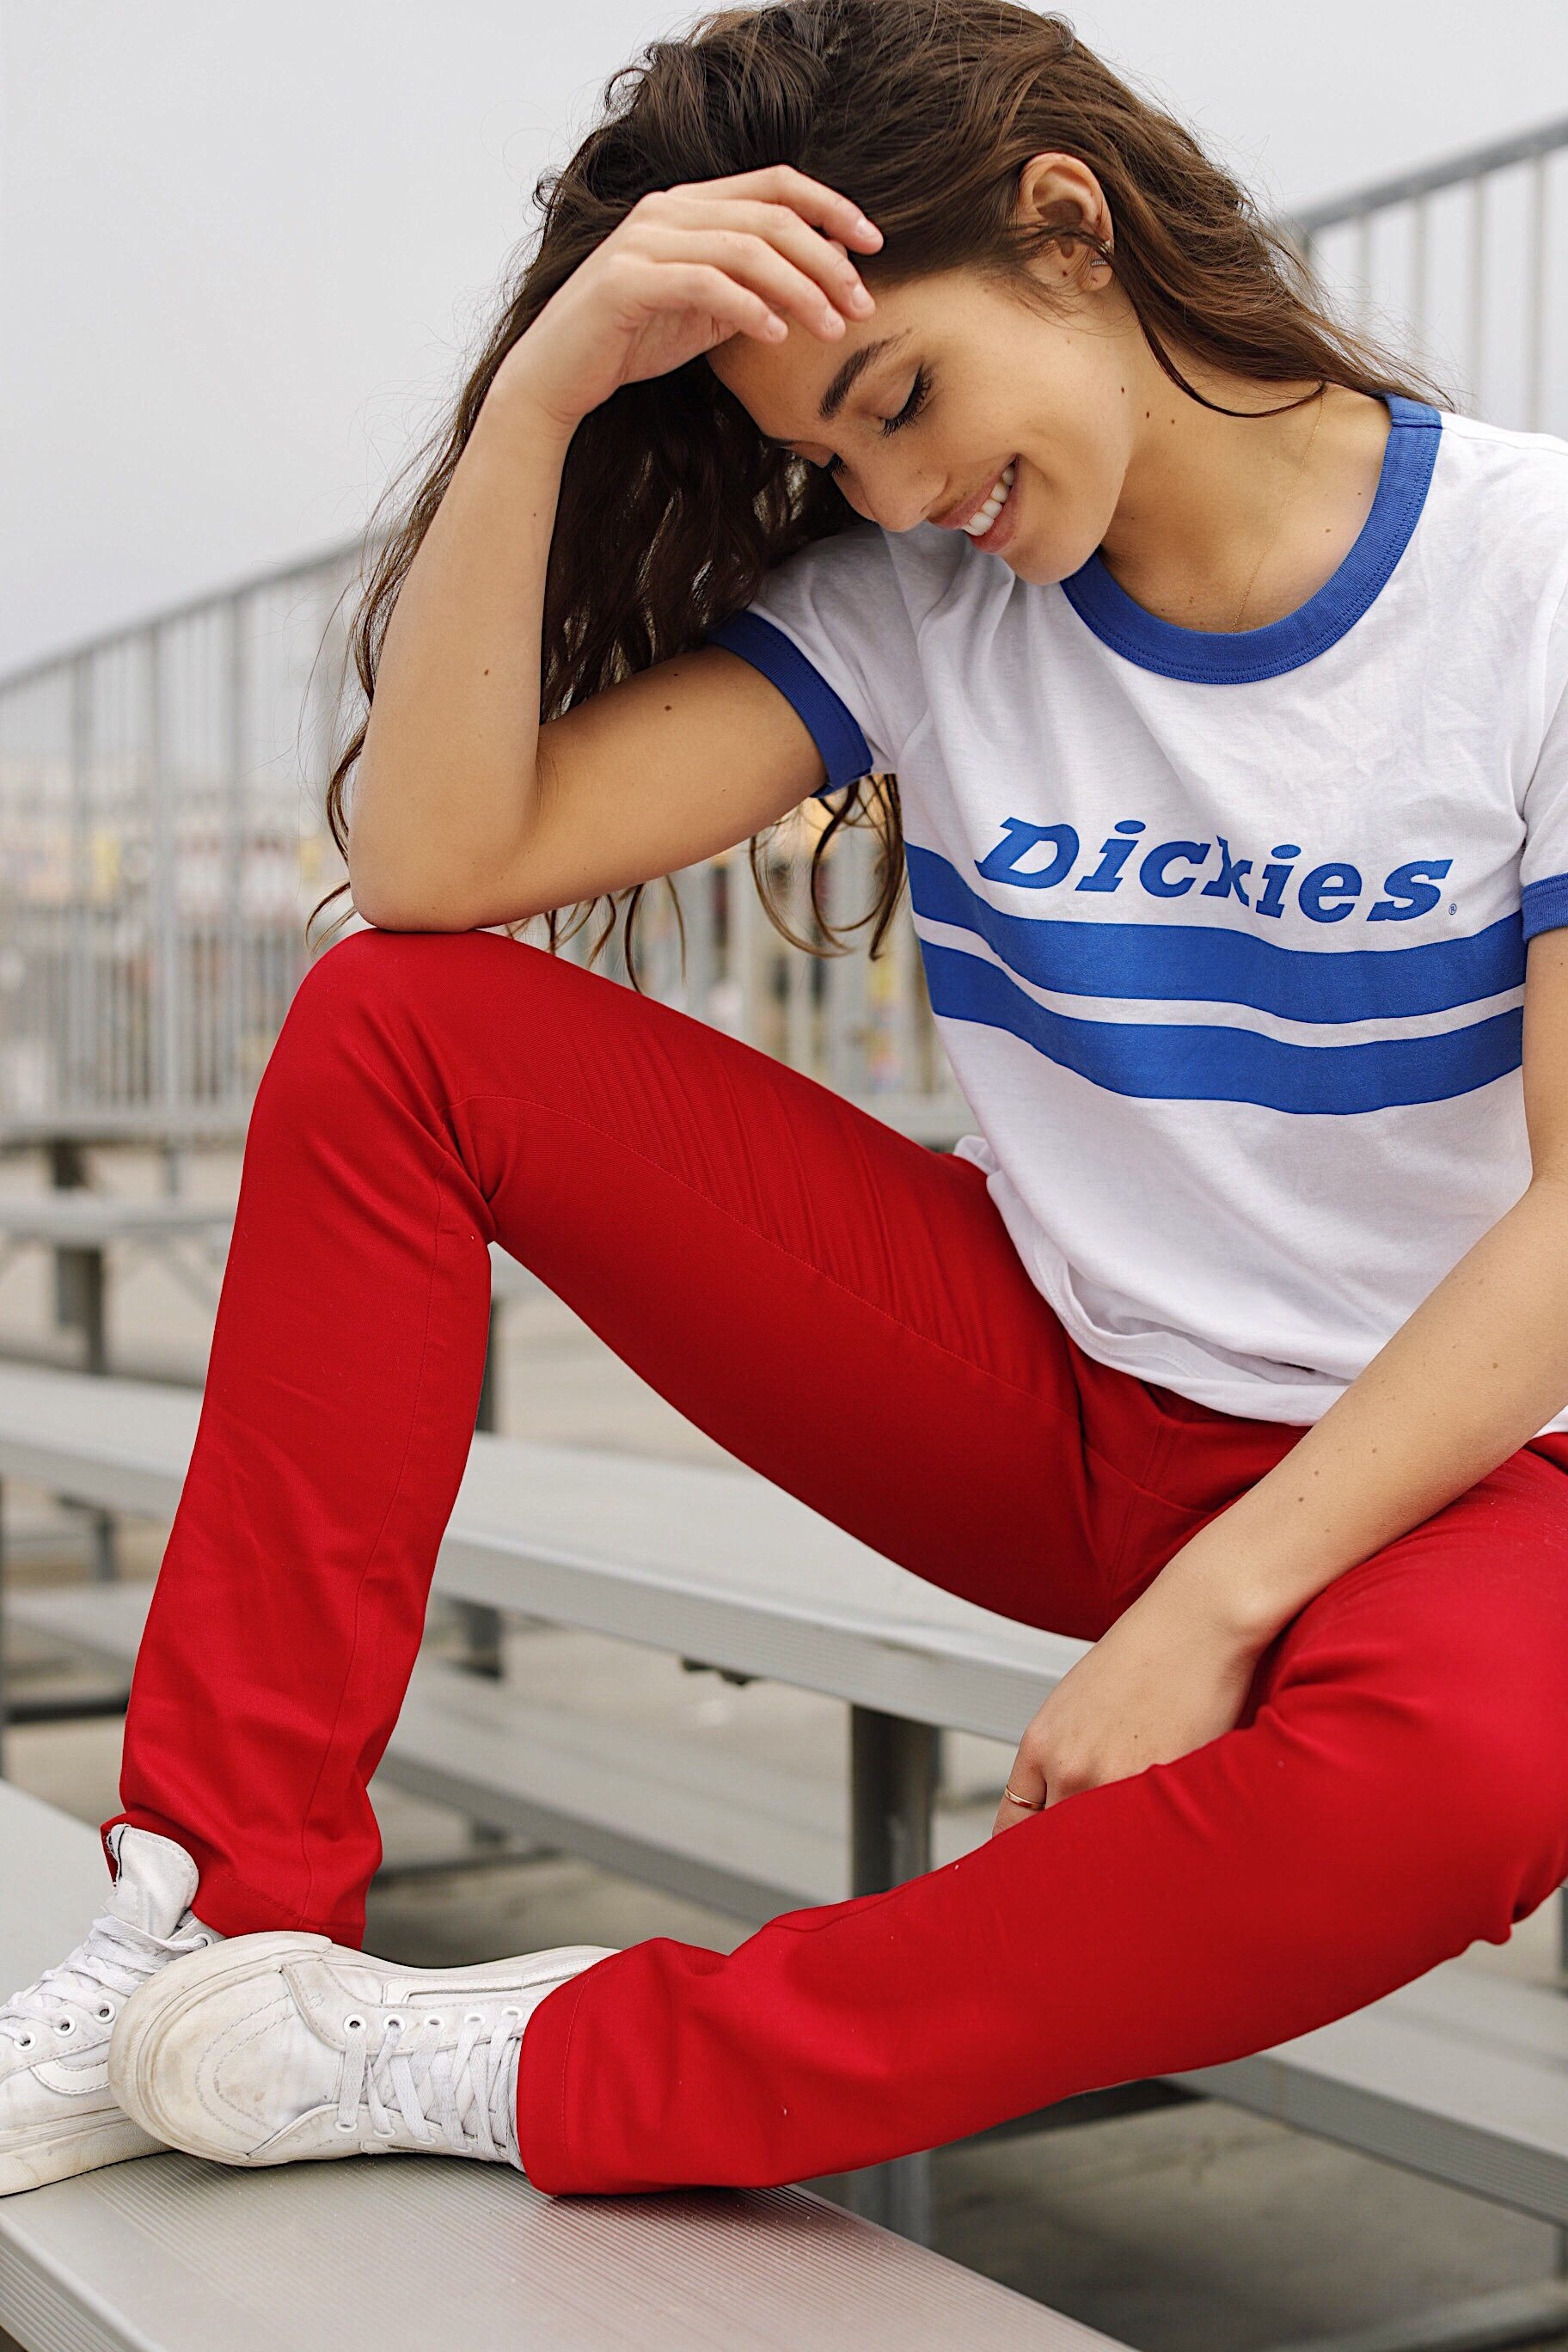 dfcb6133e8aa2 Dickies Red Pants available at Zumiez! (36.95)  skater  skatestyle  zumiez   dickies